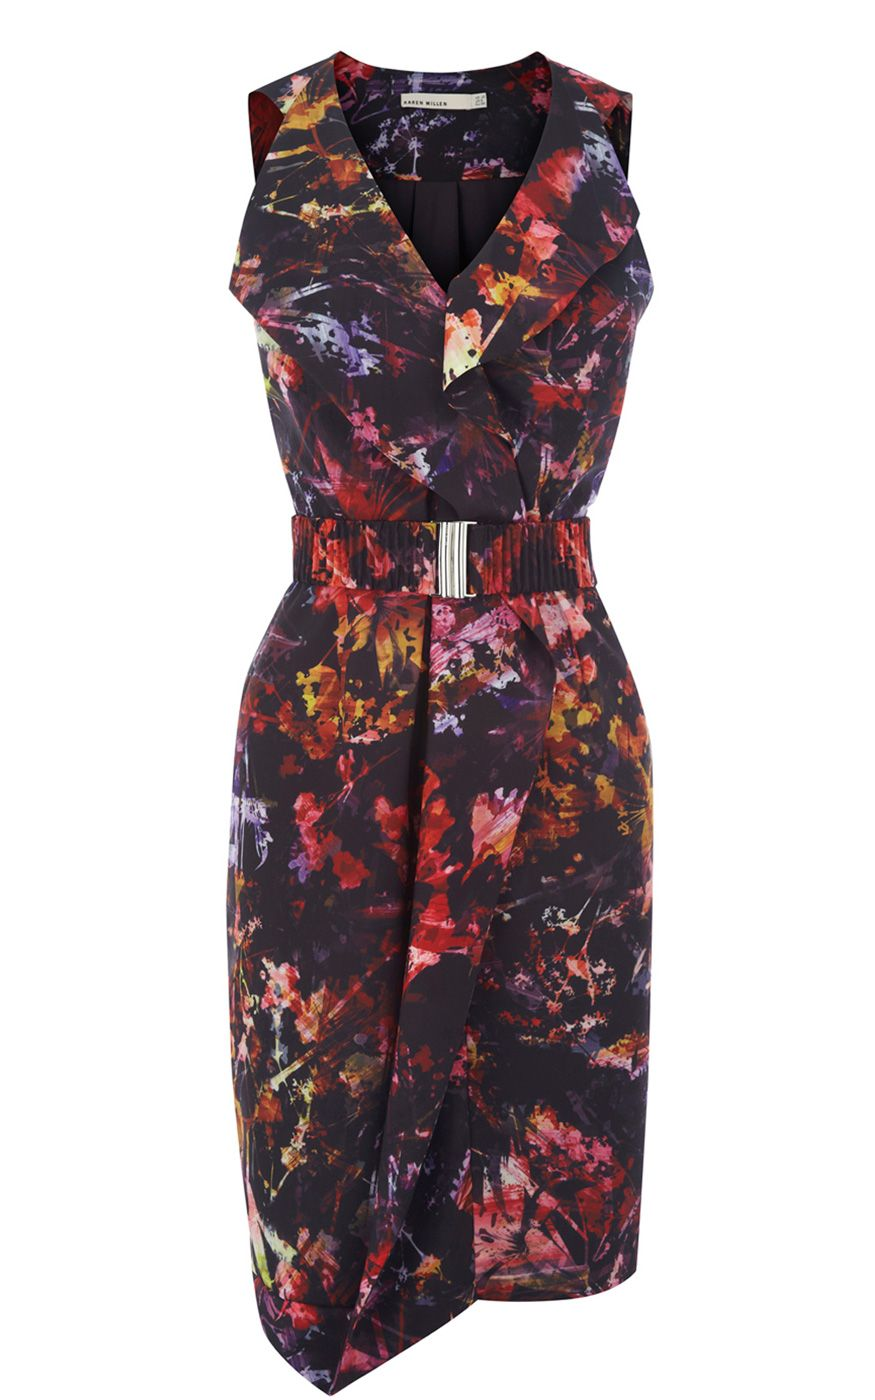 05677658e59e Karen Millen Paint splash Floral Dress Black Multi